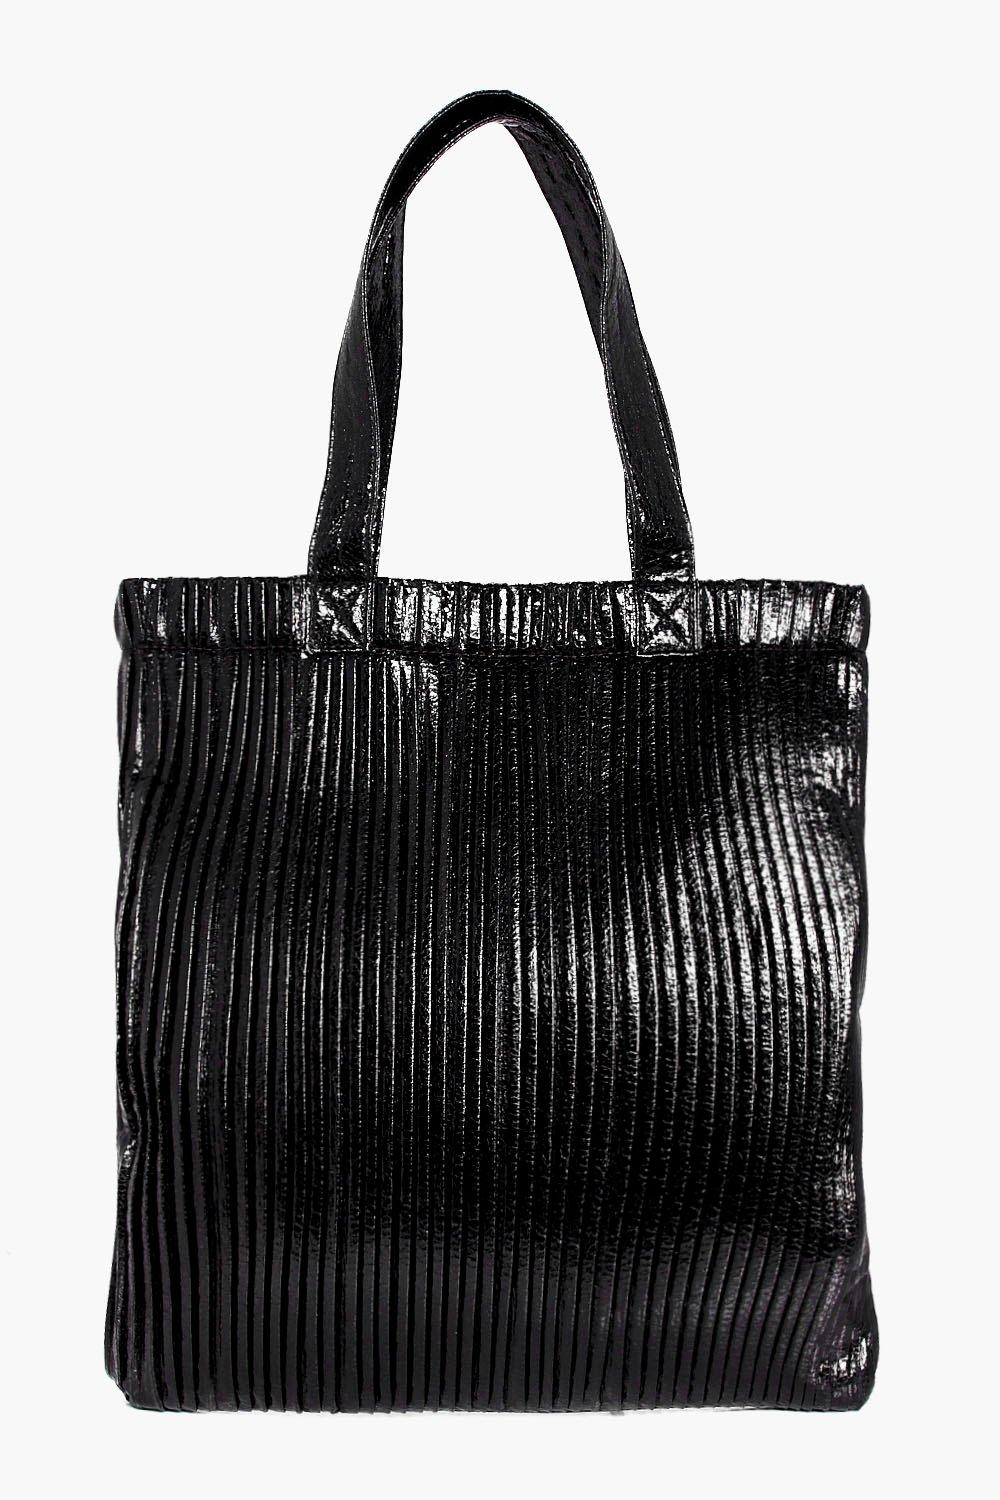 Plisse Effect Metallic Shopper Bag - black - Aleen